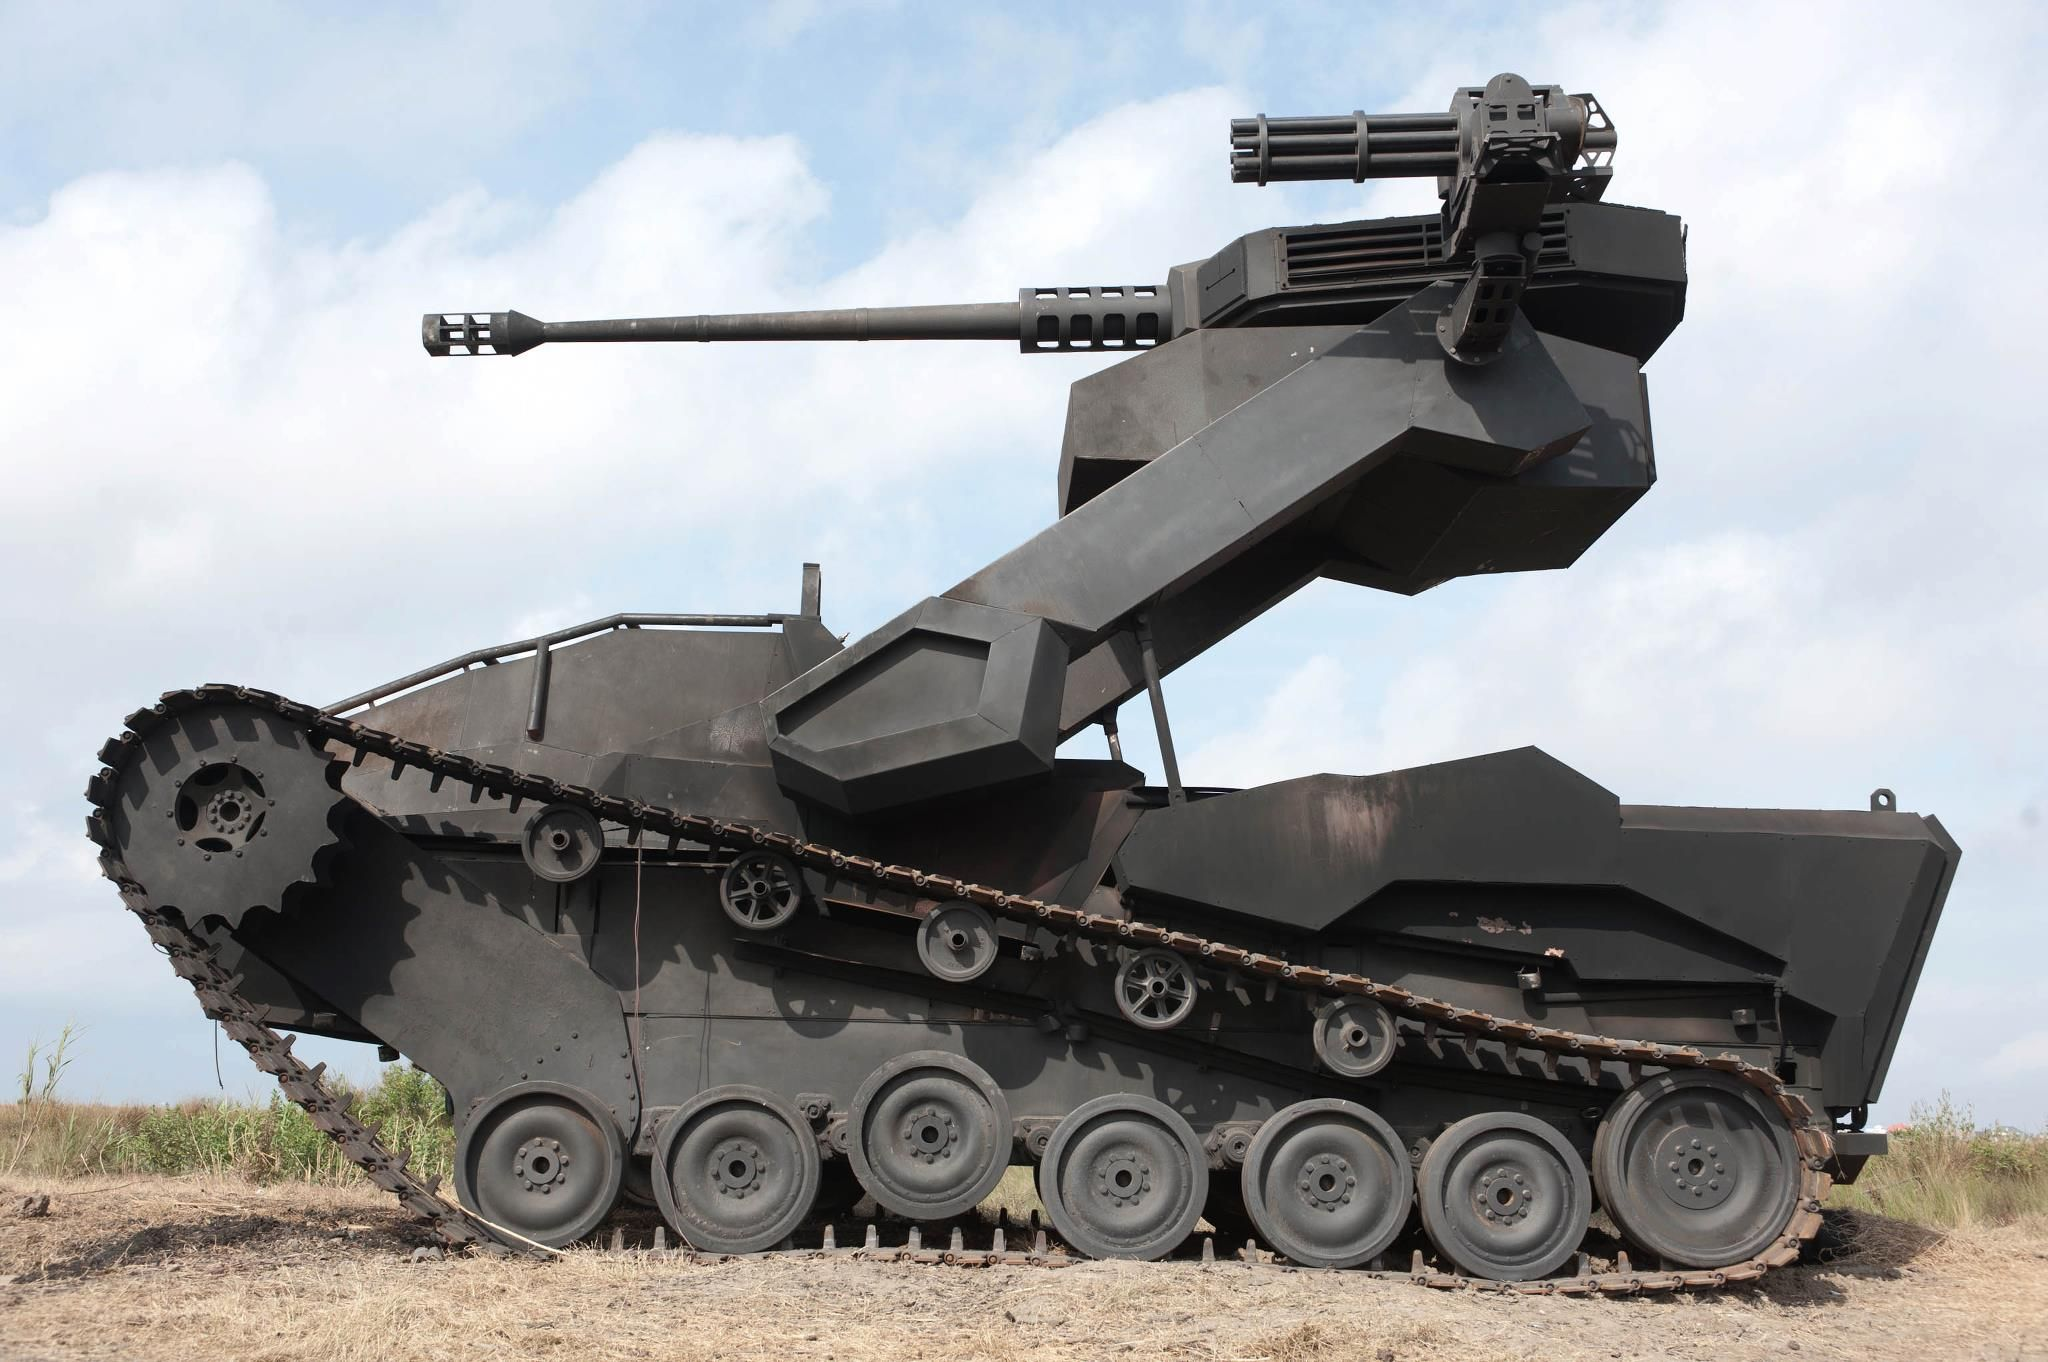 tank and equipment game description Vertical stabilizer mk 1 light spall liner camouflage net fill tanks with co2  coated optics stabilizing equipment system experimental optics.